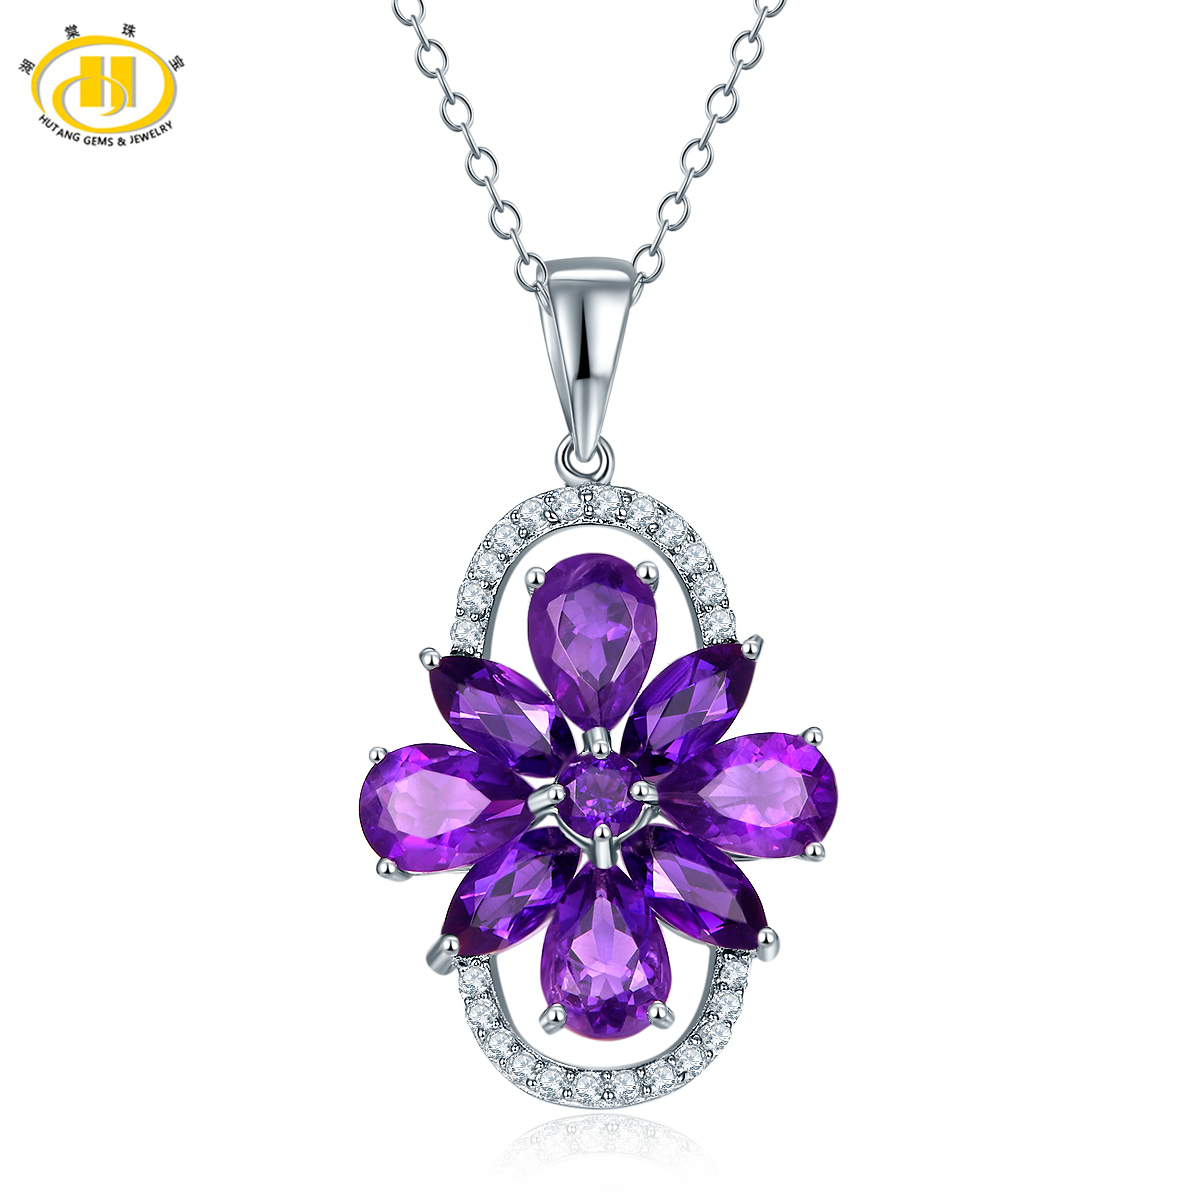 Hutang Natural Amethyst Flower Pendant Necklace Solid 925 Sterling Silver Gemstone Fine Jewelry for Women Christmas Gift 11.11